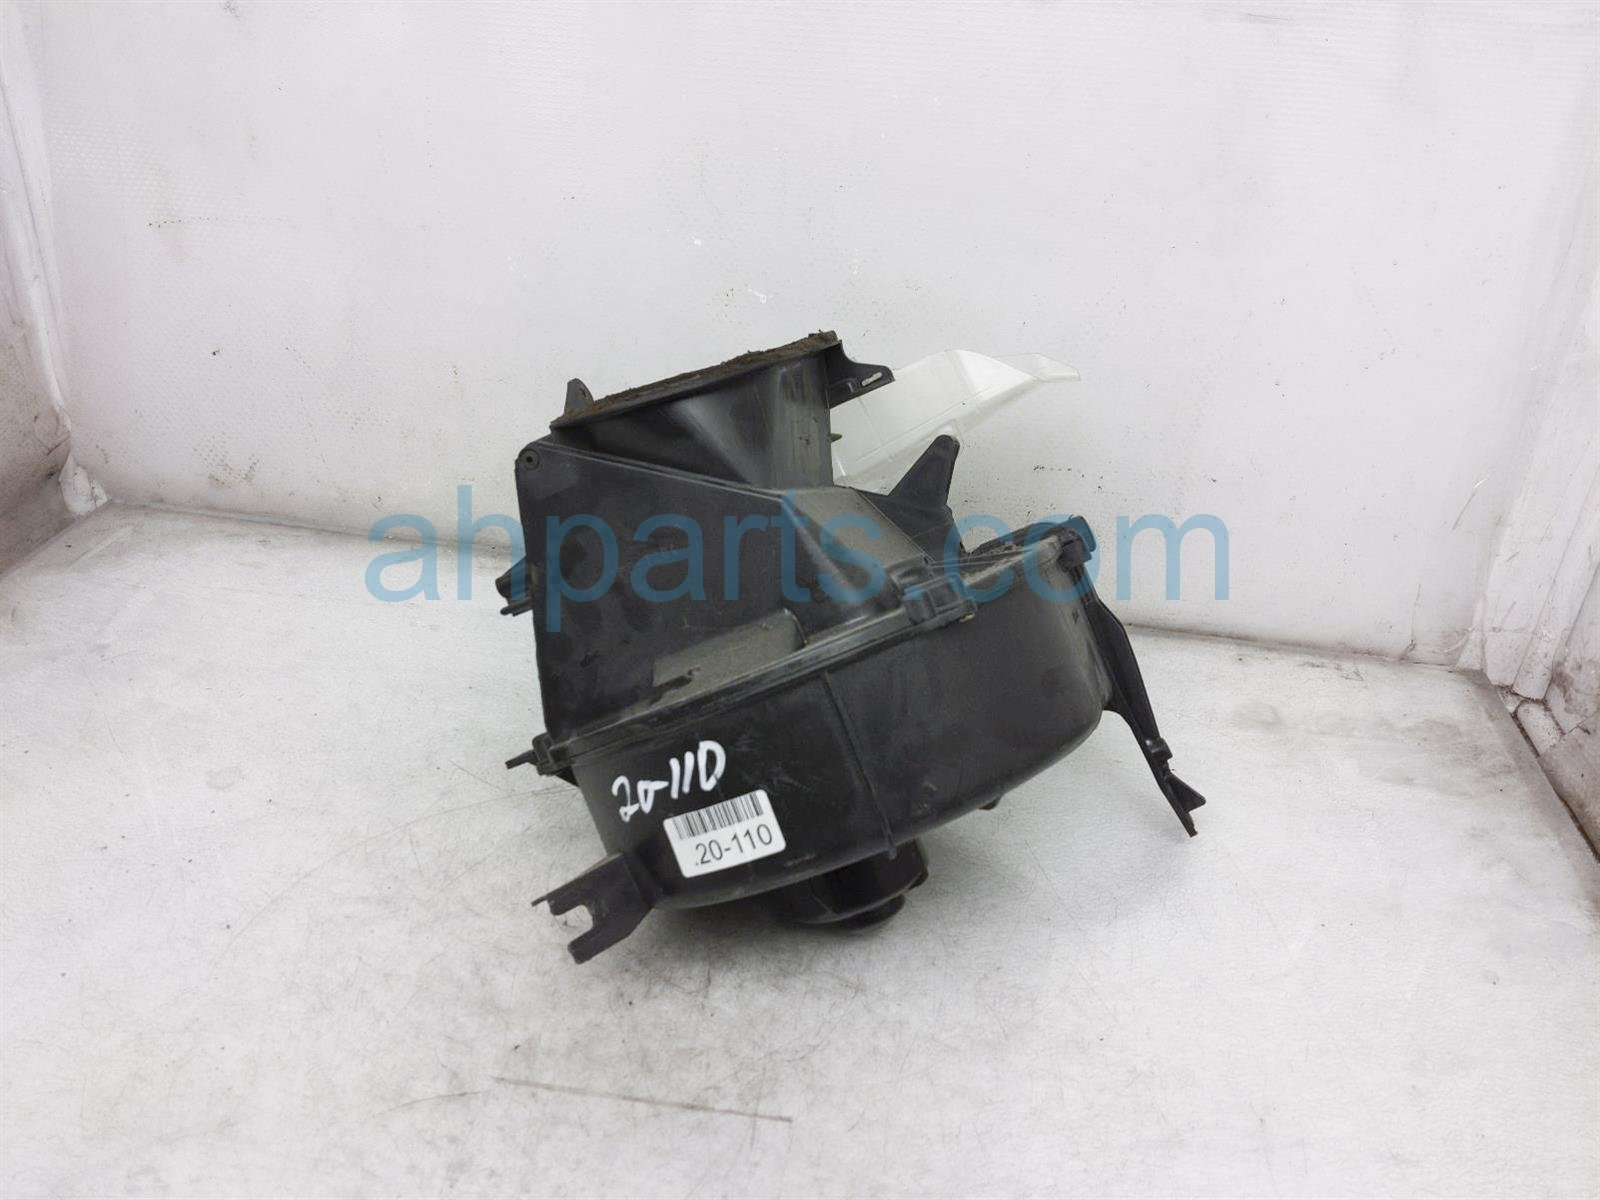 2000 Toyota Tacoma Air Fan/heater Blower Motor 87130 04031 Replacement